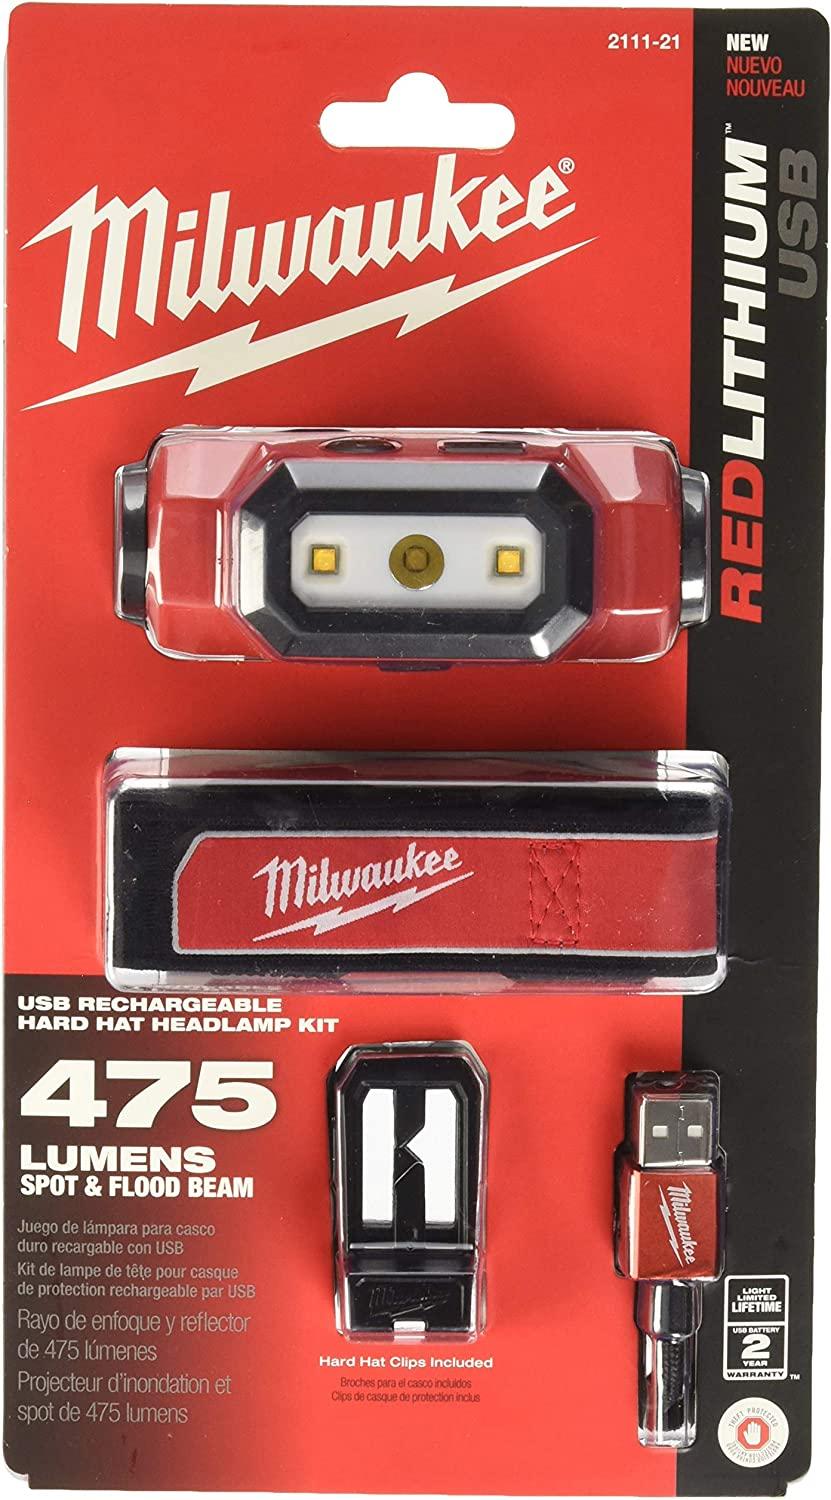 MILWAUKEE'S Electric Tools 2111-21 USB Rechargeable Headlamp, Red